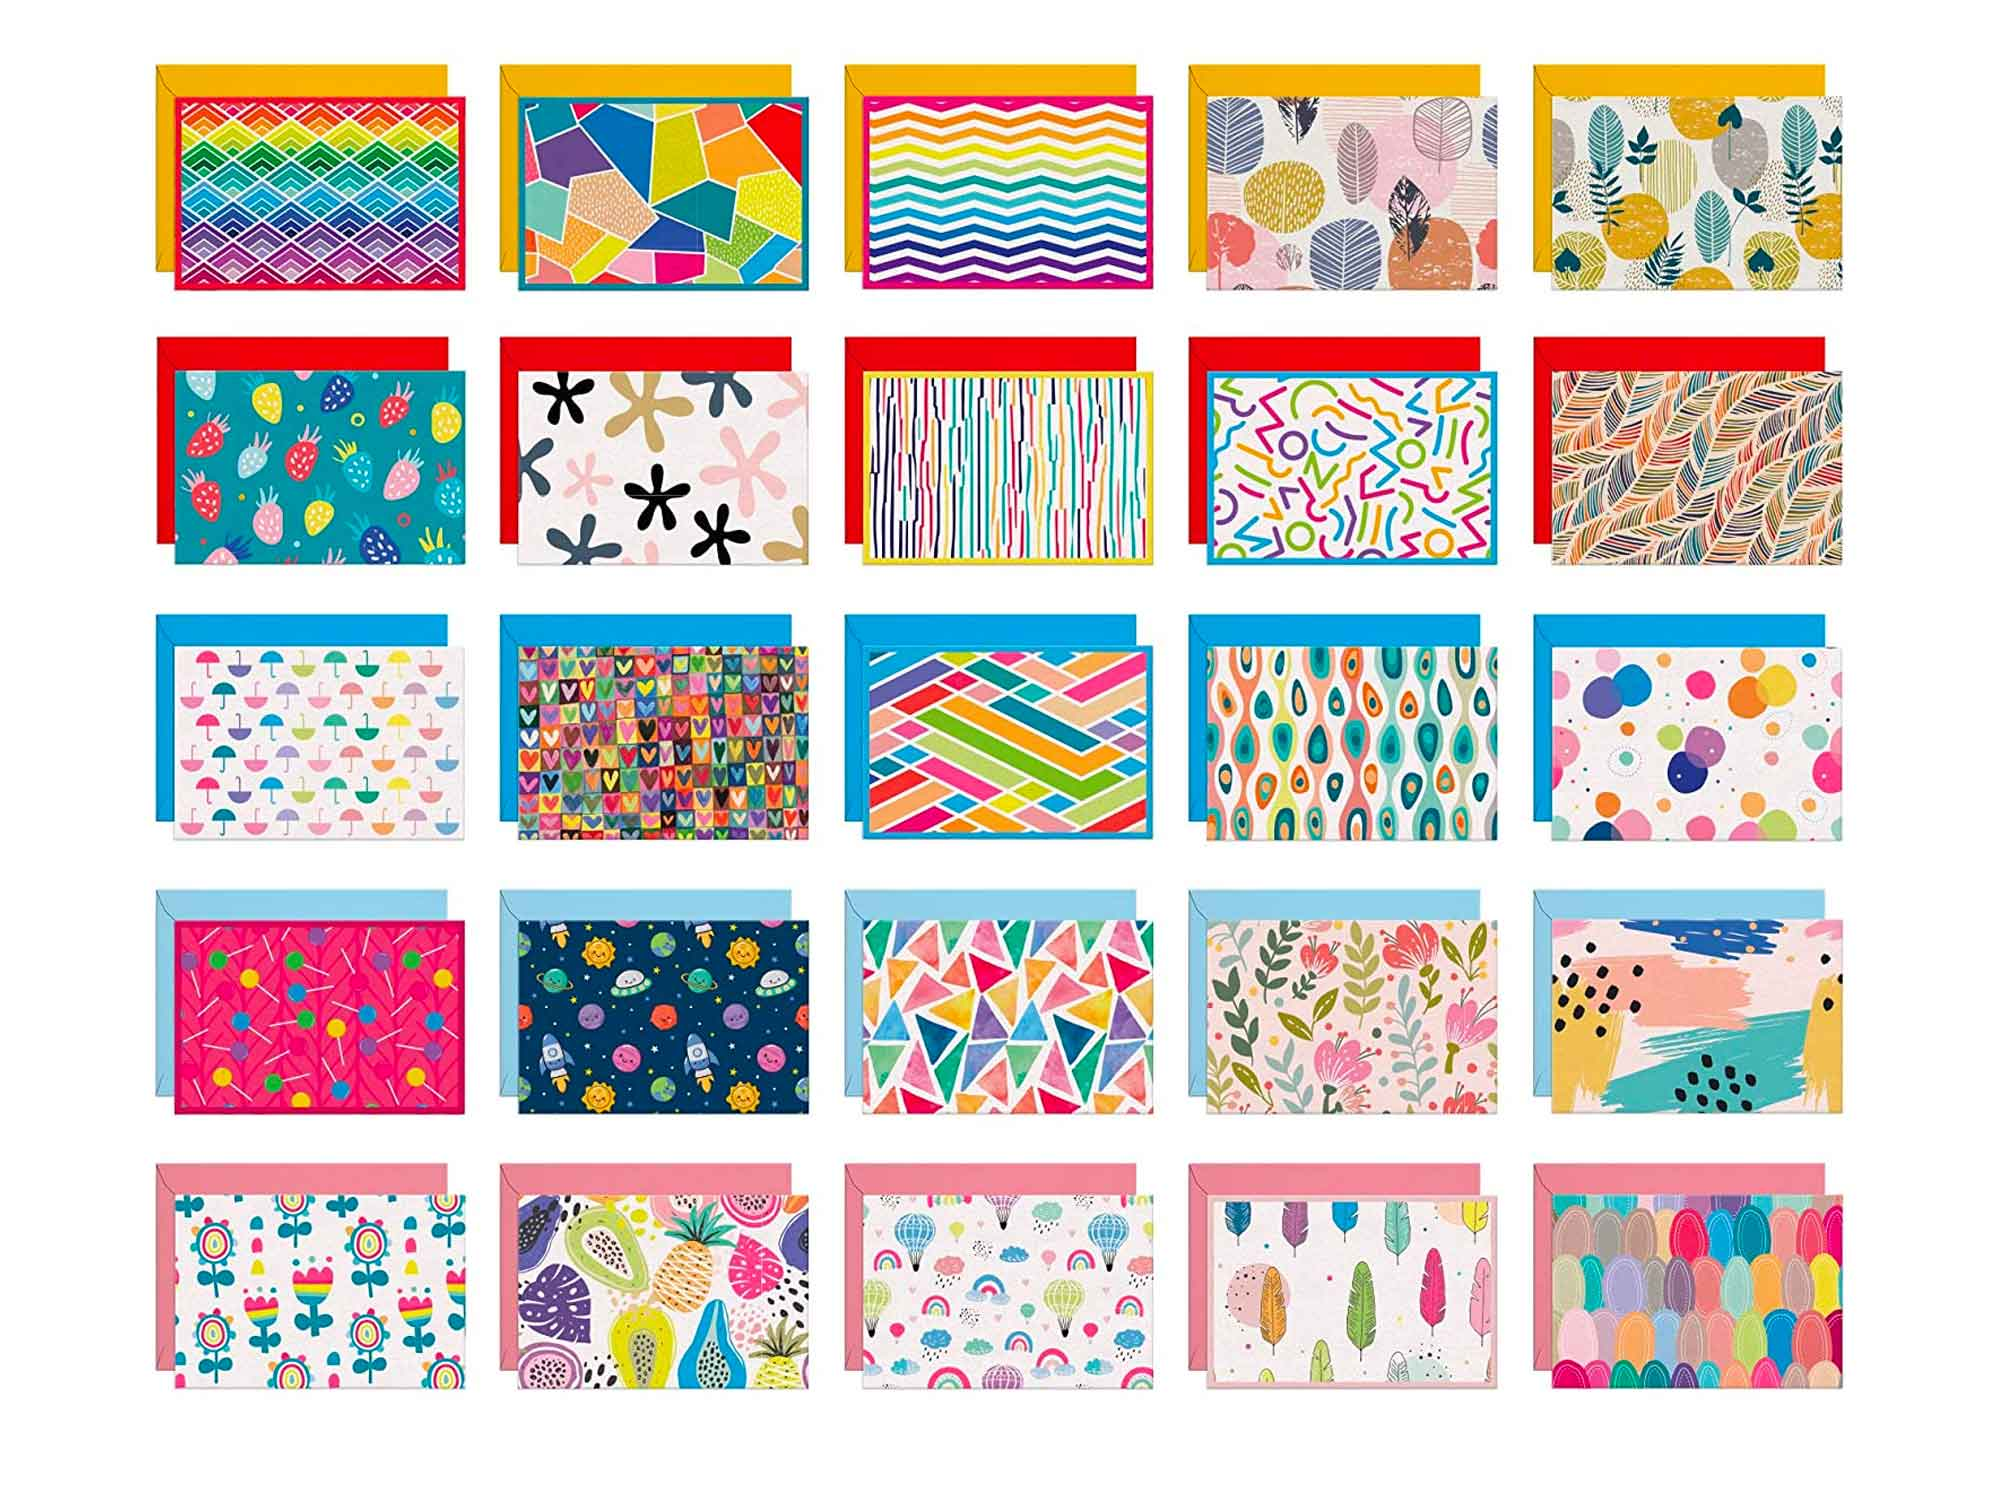 Dessie 50 Blank Cards With Envelopes - Set of 50 Different 4x6 Inch Blank Greeting Cards w/Colored Envelopes & Gold Seals. Colorful Designs - No Repetition. All Occasion Note Cards with Envelopes Set